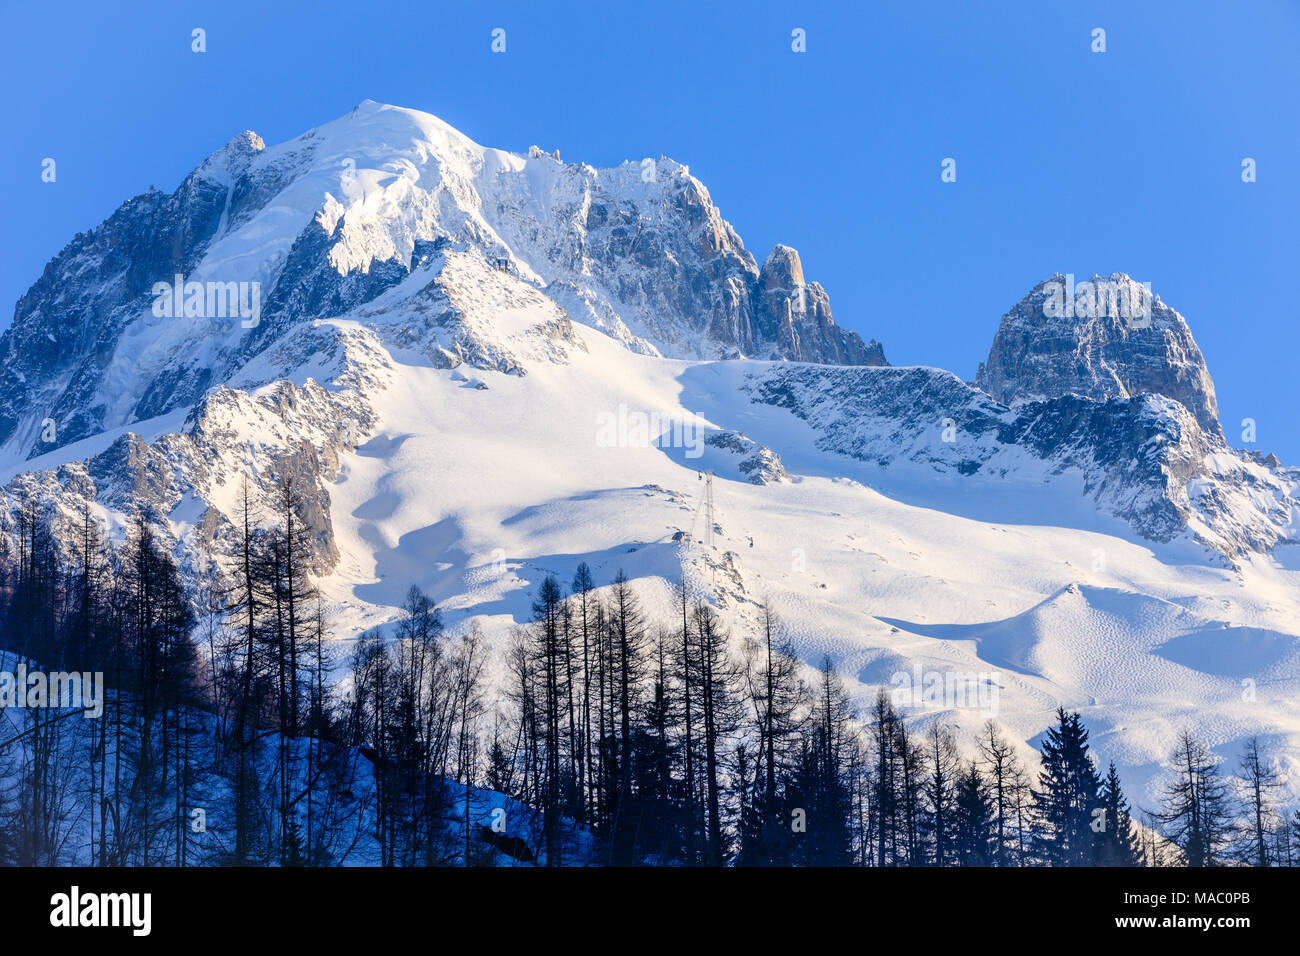 Grand Montets ski area above the ski resort of Argentiere in the French Alps - Stock Image